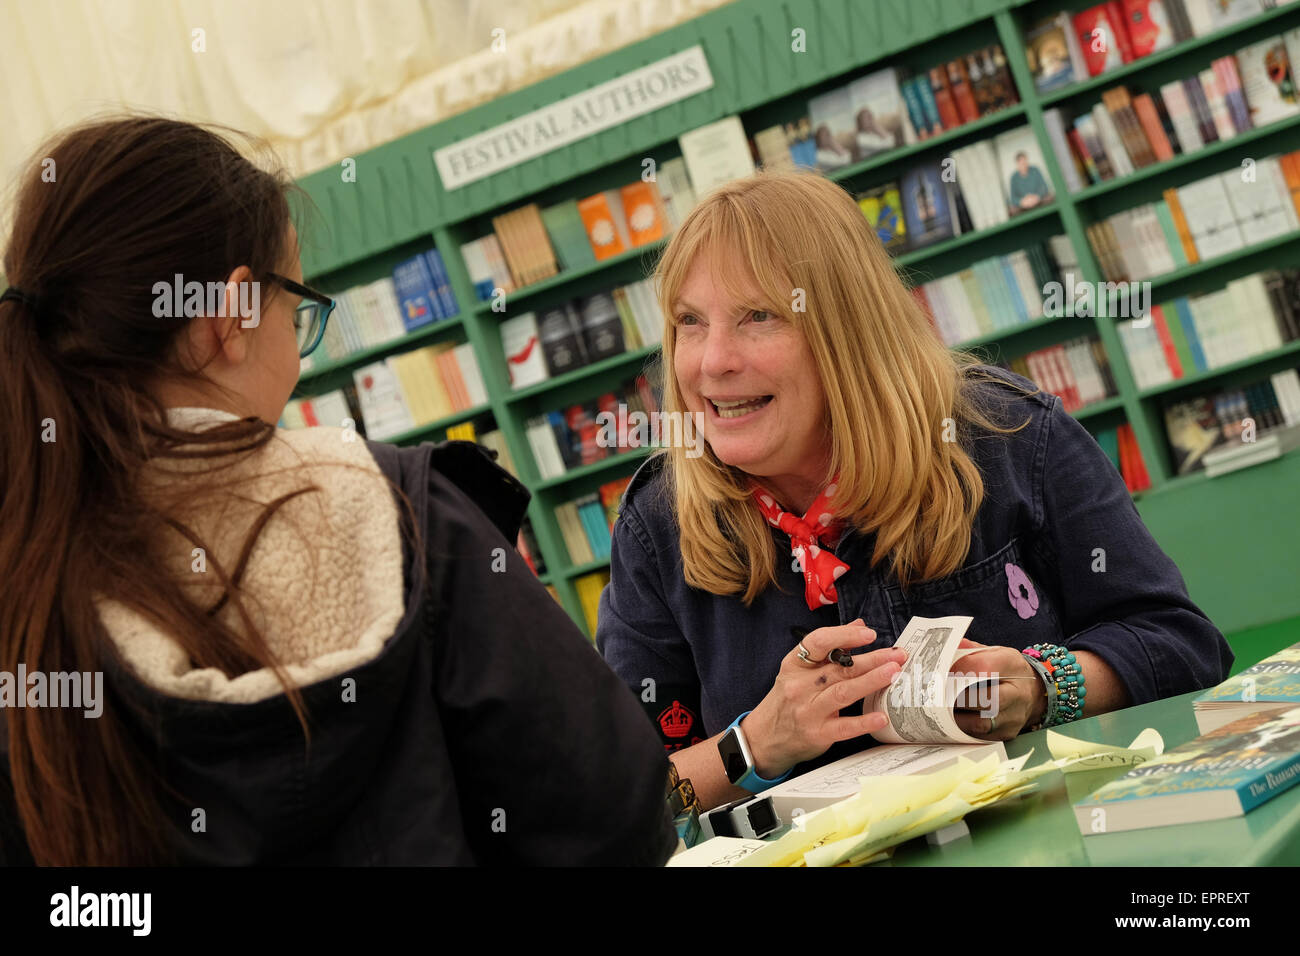 Powys, Wales, UK. 21st May, 2015. Opening day for the 2015 Hay Festival. Author Ruth Symes writing as Megan Rix - Stock Image